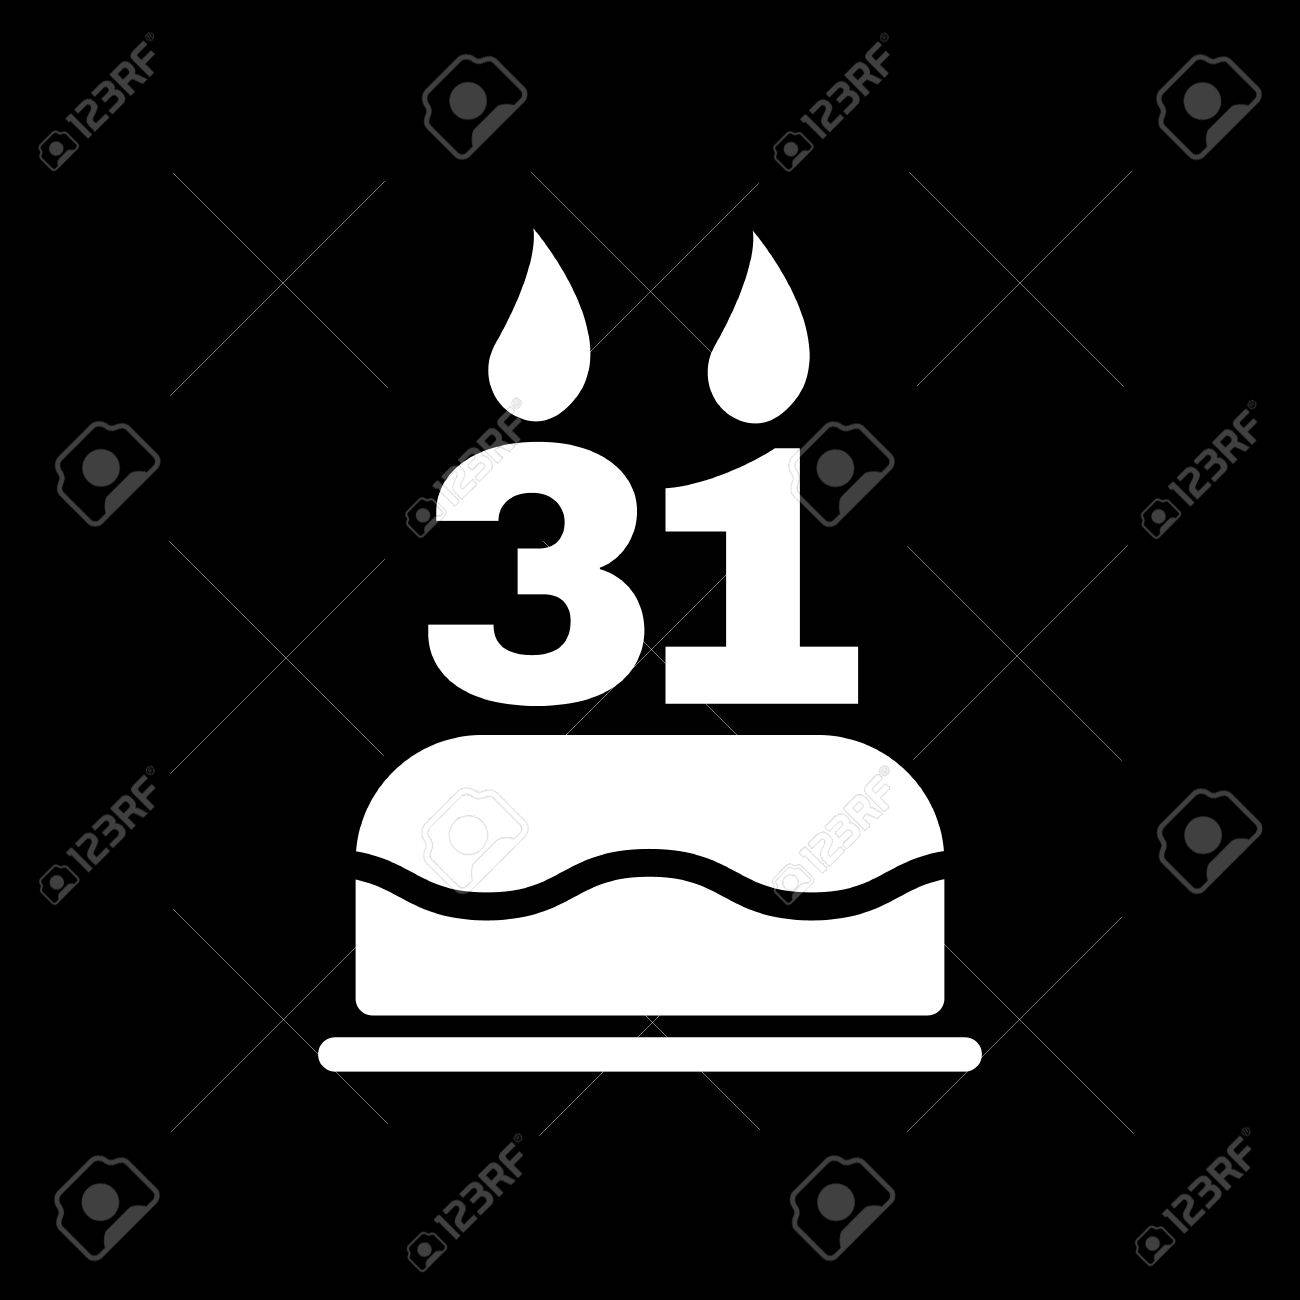 The birthday cake with candles in the form of number 31 icon the birthday cake with candles in the form of number 31 icon birthday symbol buycottarizona